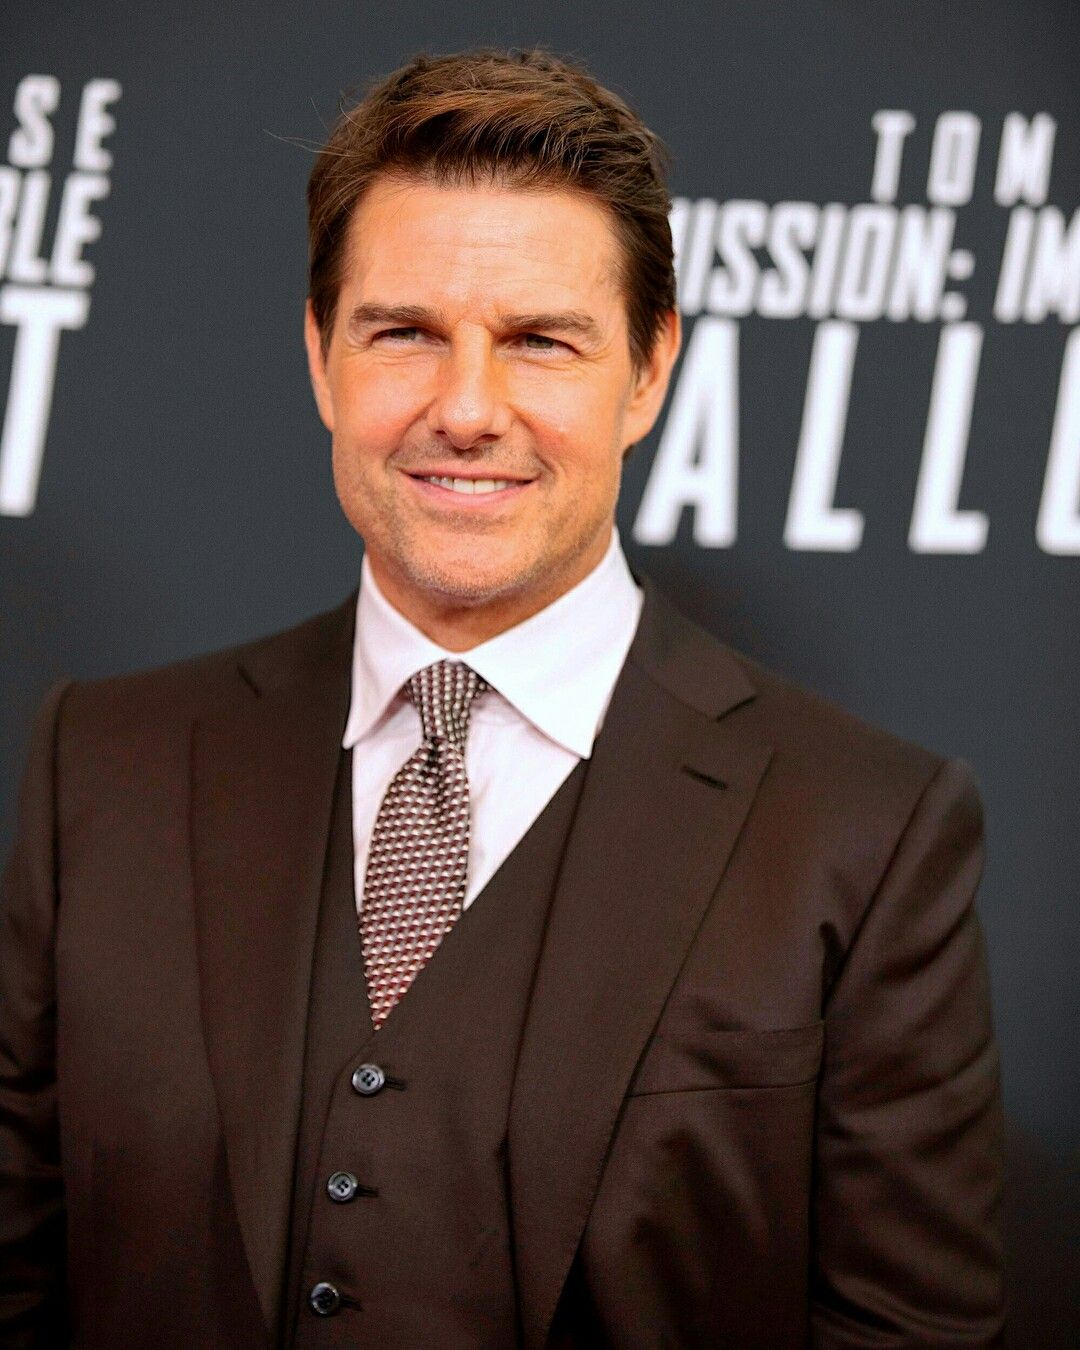 tom-cruise-asshole-ass-tits-pic